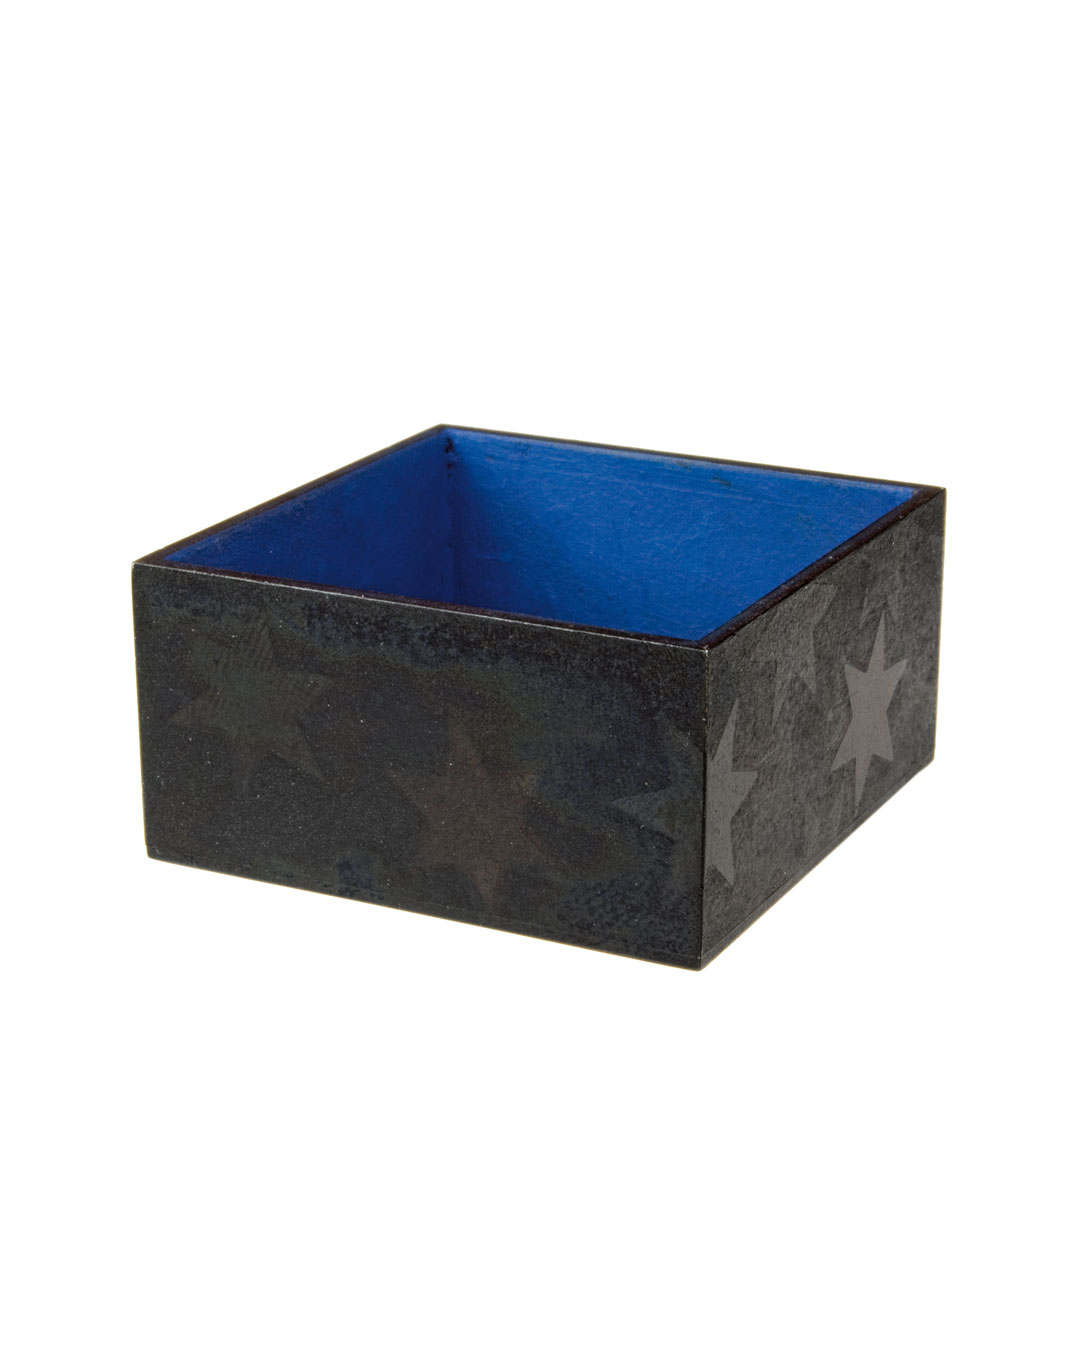 Tore Svensson, Box , 2009, brooch; etched and painted steel, 40 x 40 x 20 mm, €605